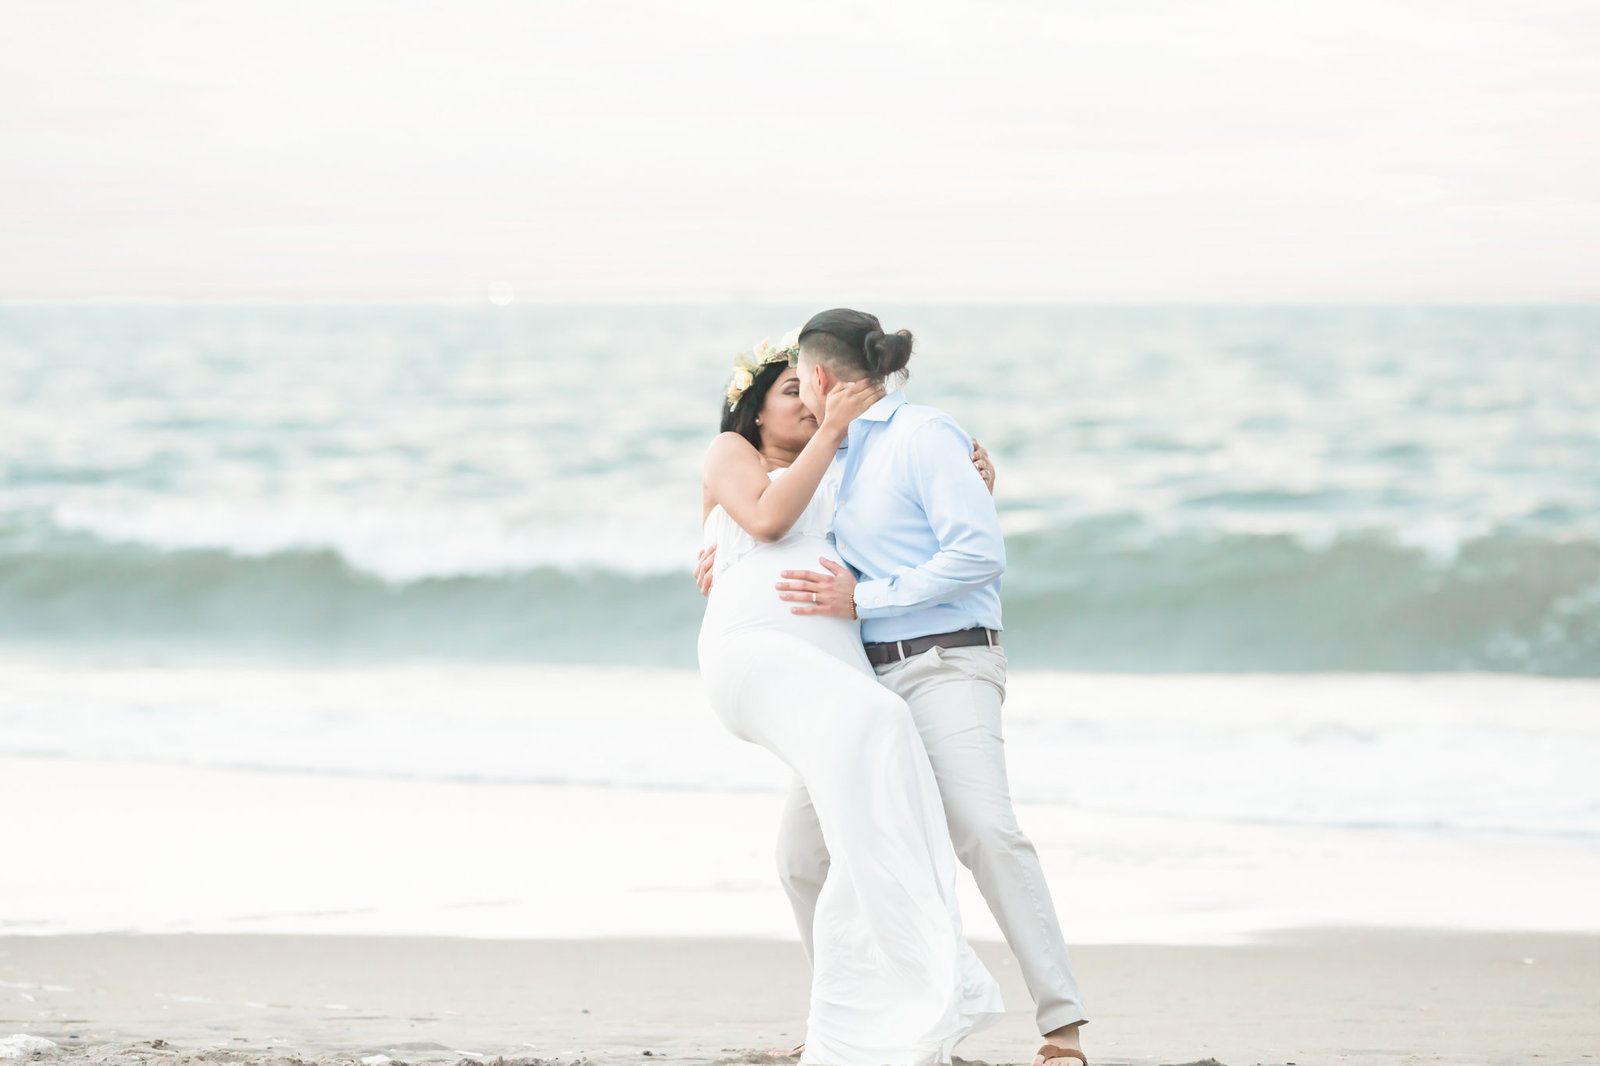 Dreamcatcher Rose Studios - maternity - coney island ny - couple in love